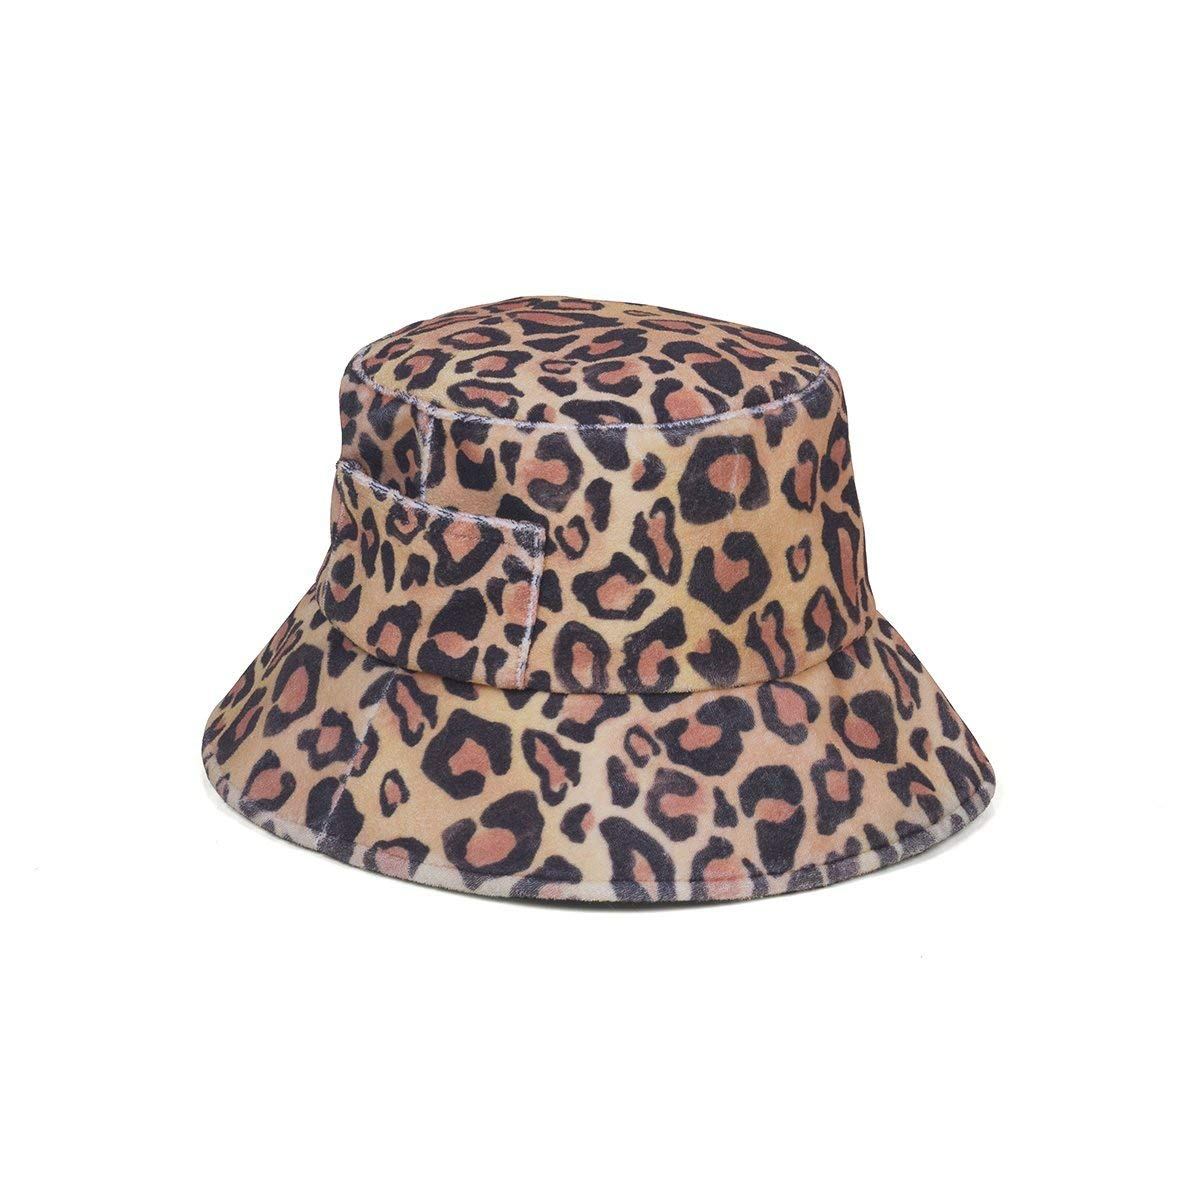 Lack of Color Women's Wave Terrycloth Bucket Hat (Leopard, Medium/Large) by Lack of Color